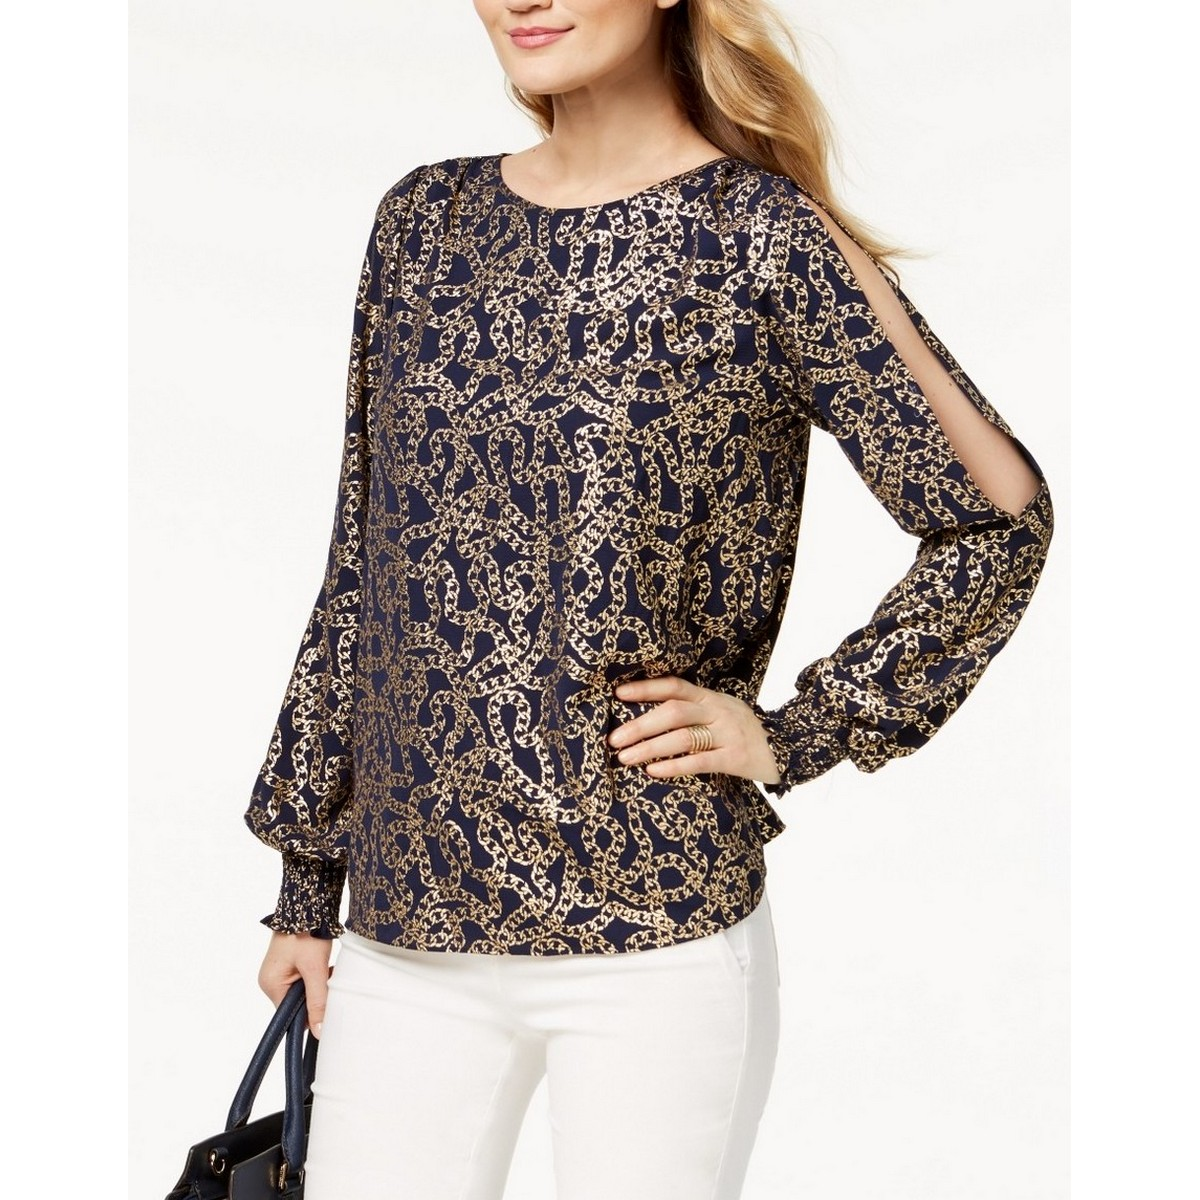 5074b02cf7b28 Details about MICHAEL KORS Women s Navy And Gold Chain-print Cold-shoulder Blouse  Top L TEDO